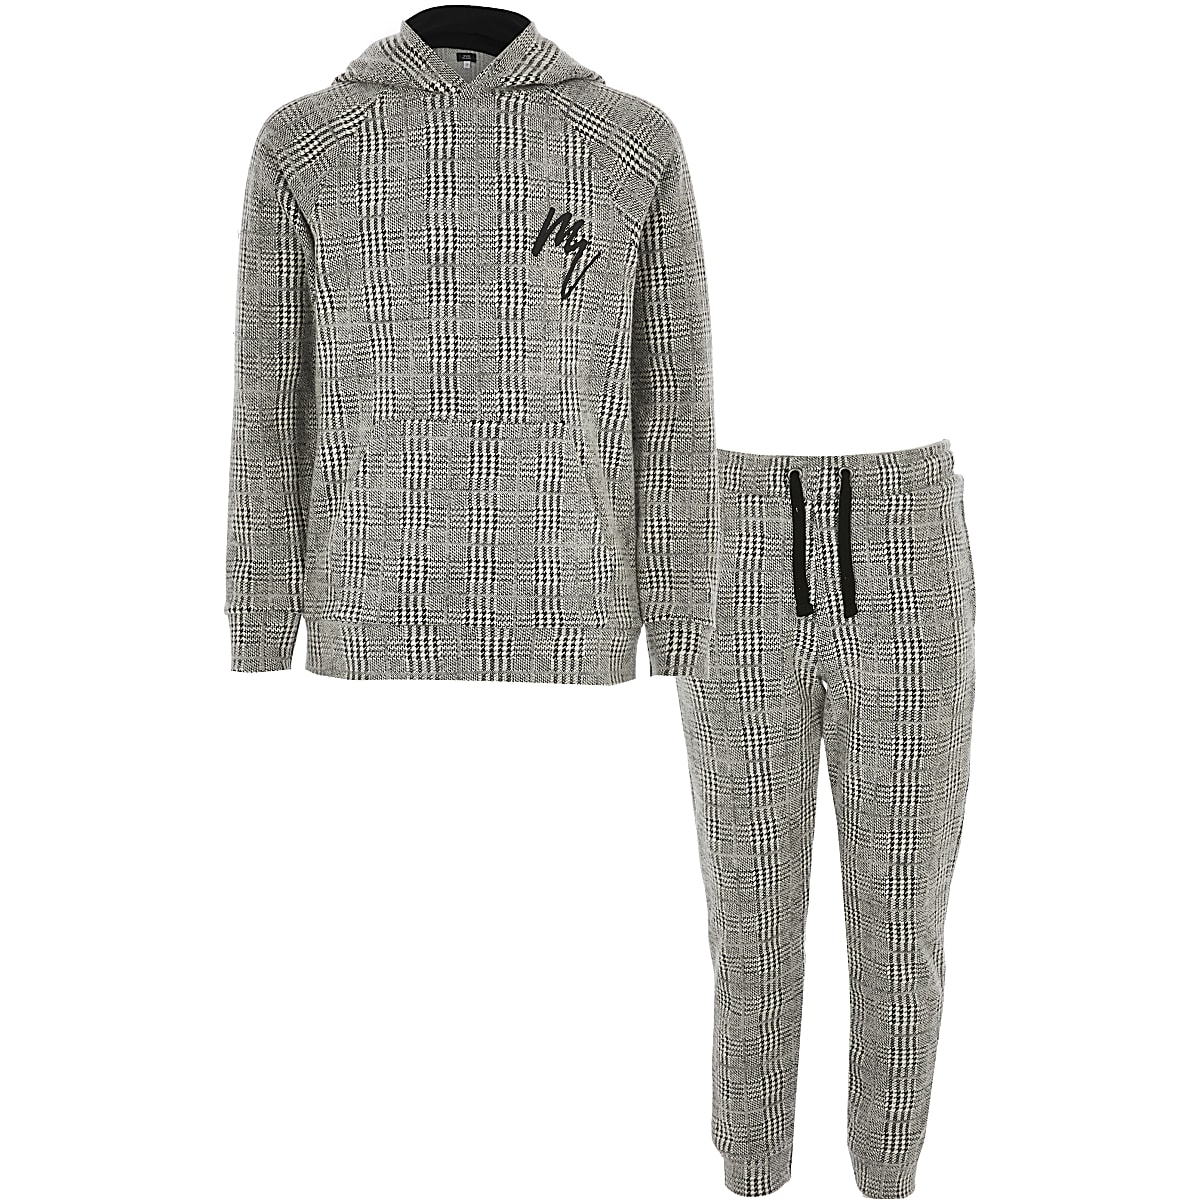 Boys grey Maison Riviera check hoodie outfit